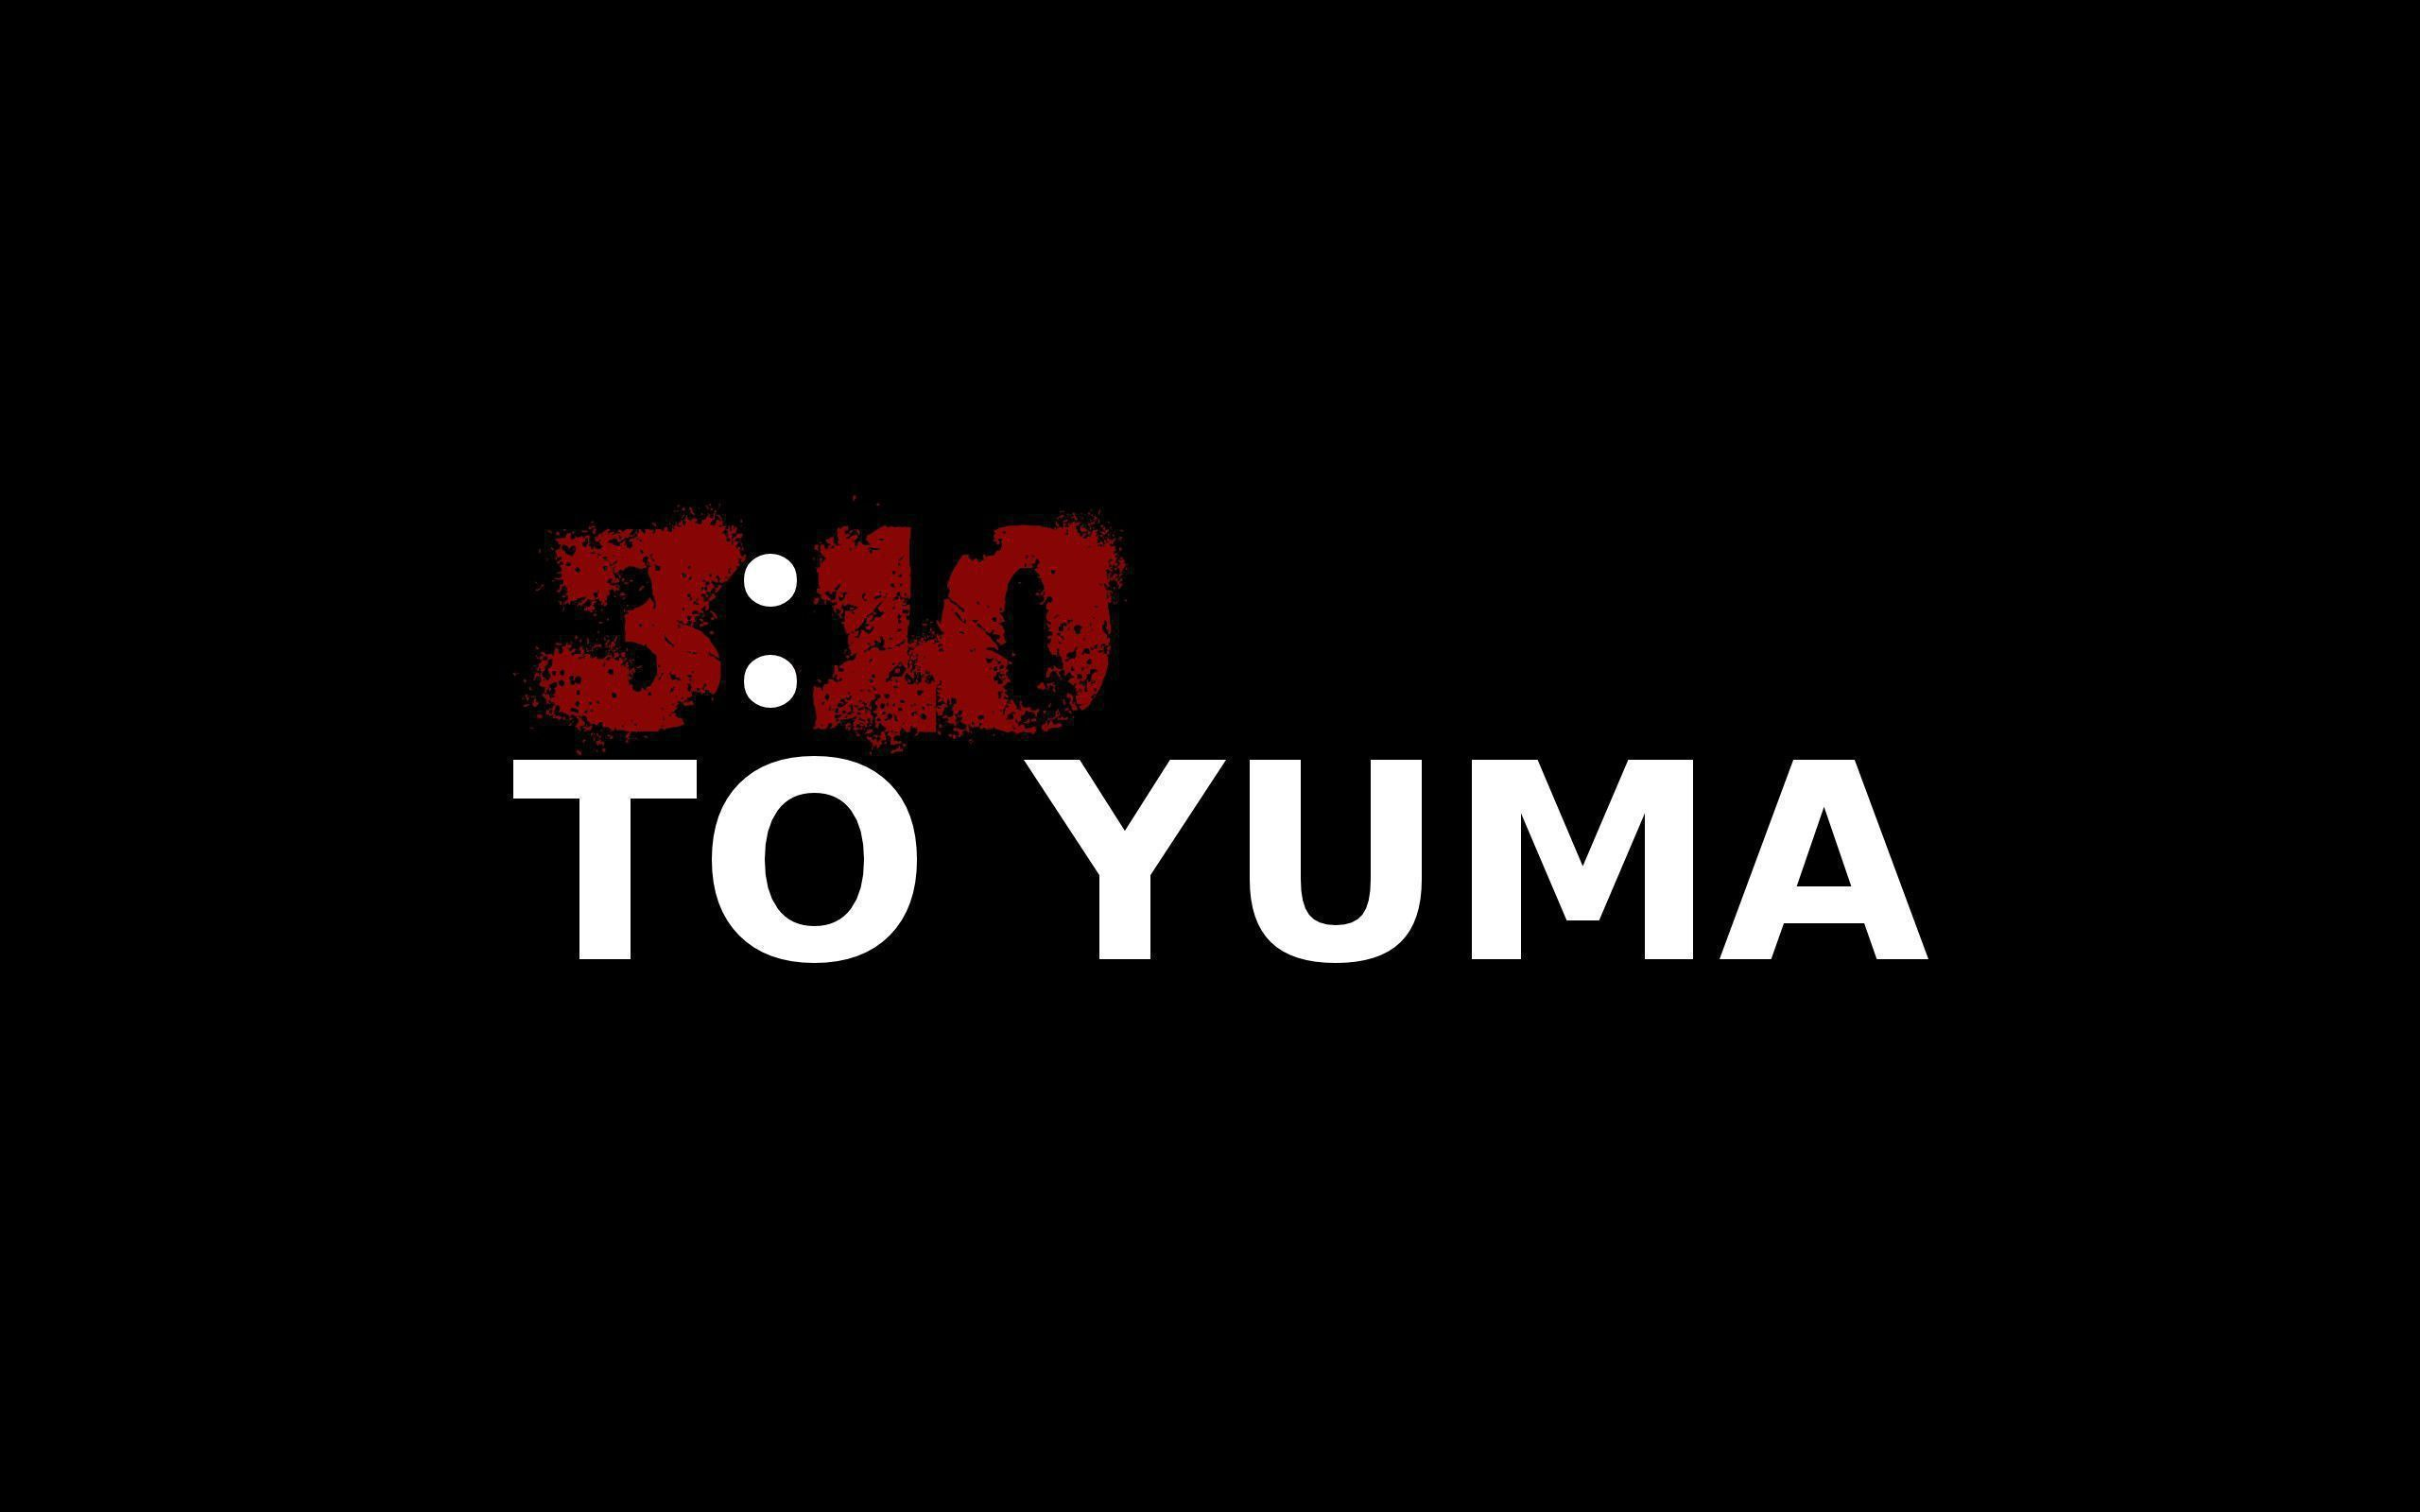 310 To Yuma Wallpapers HD